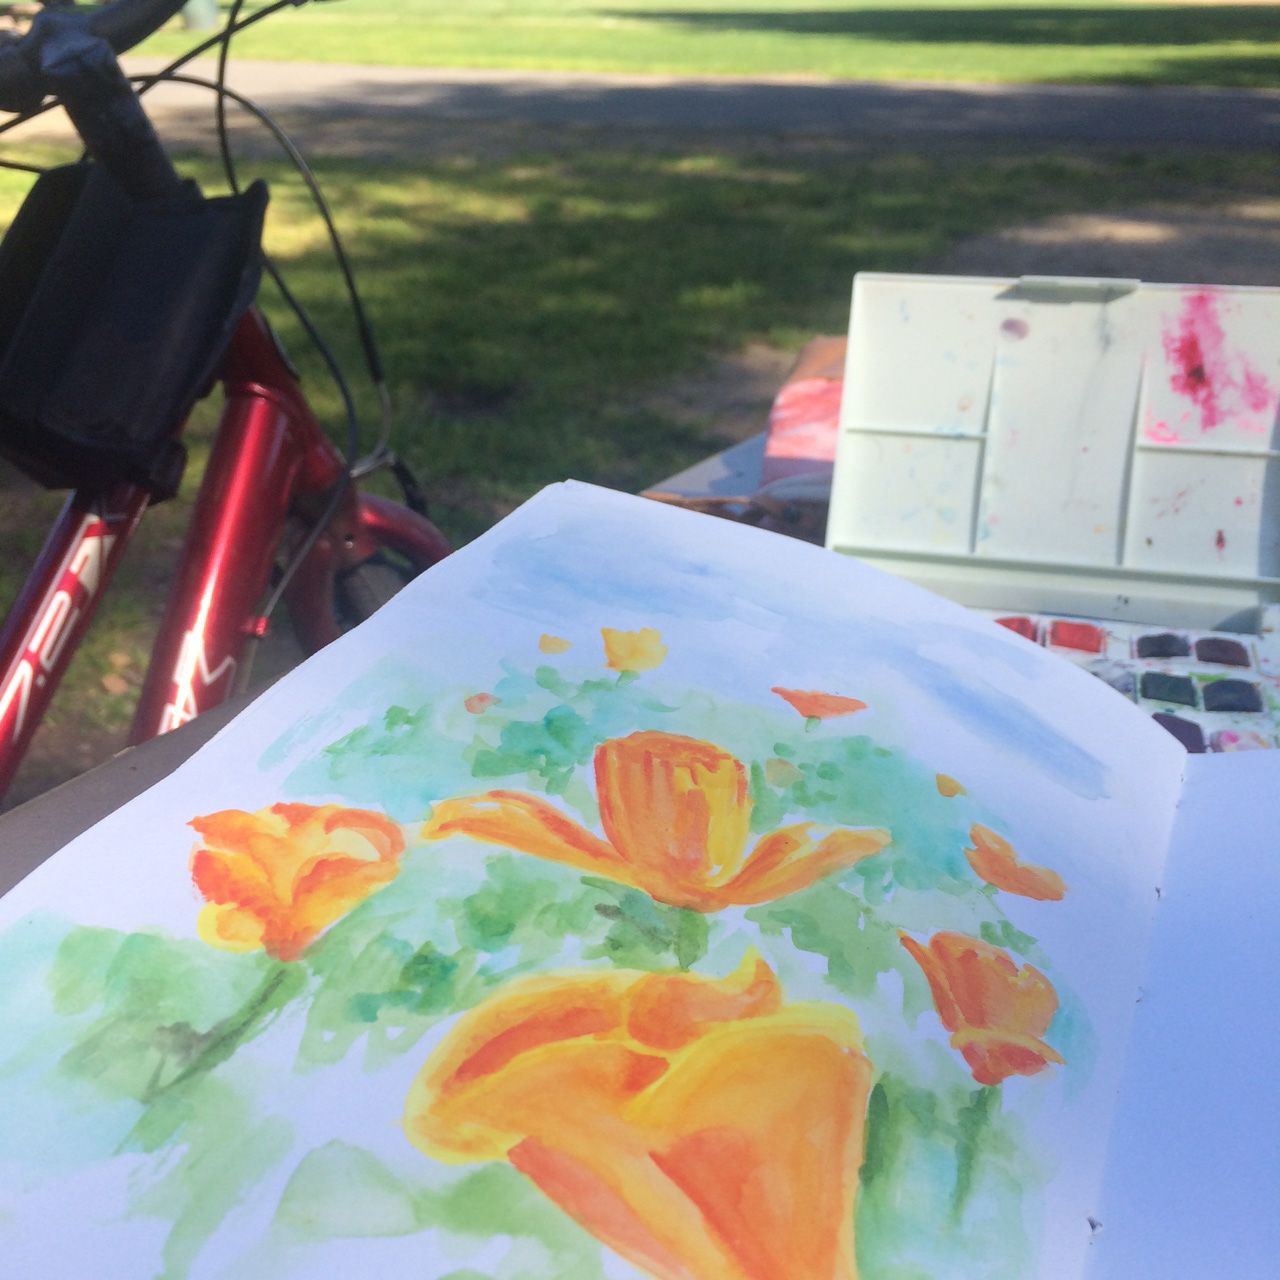 In-progress shot of day 64 at a park here in San Jose. I remember being so excited on this ride out and about that I was finally seeing poppies spring up everywhere! They are such happy flowers.